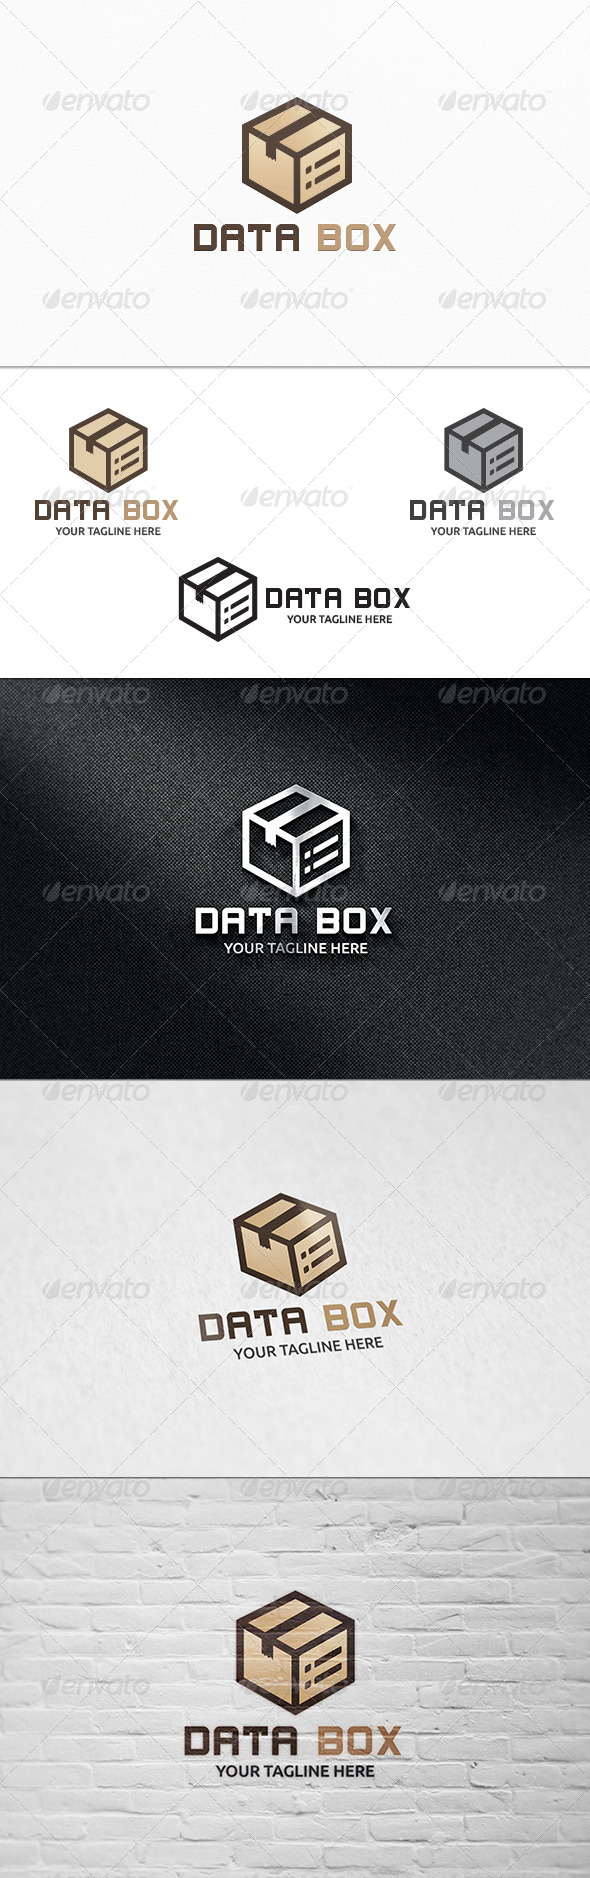 GraphicRiver Data Box Logo Template 8321113